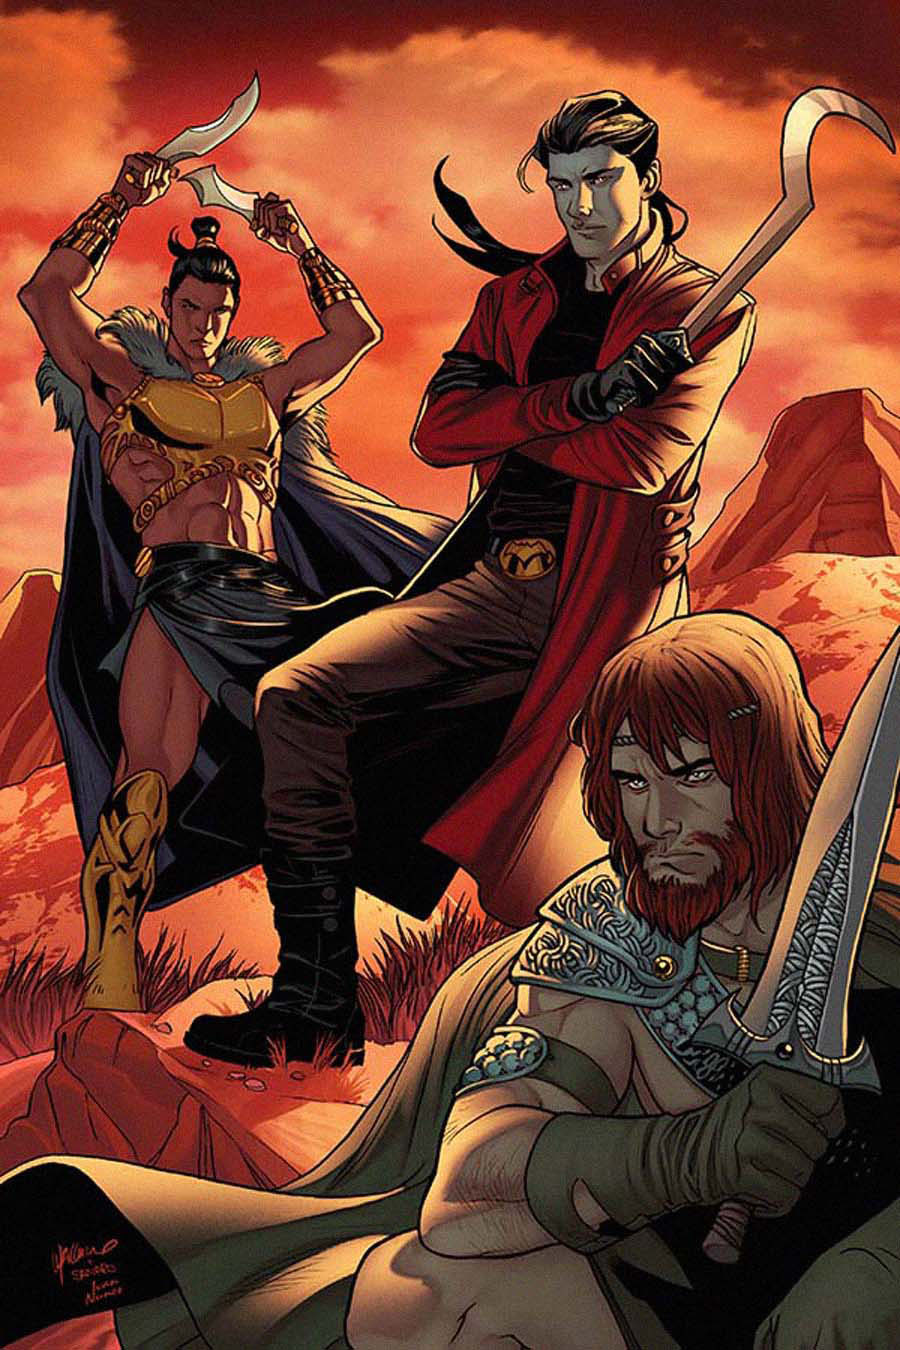 Swords Of Sorrow #5 Cover F Rare Emanuela Lupacchino Virgin Cover